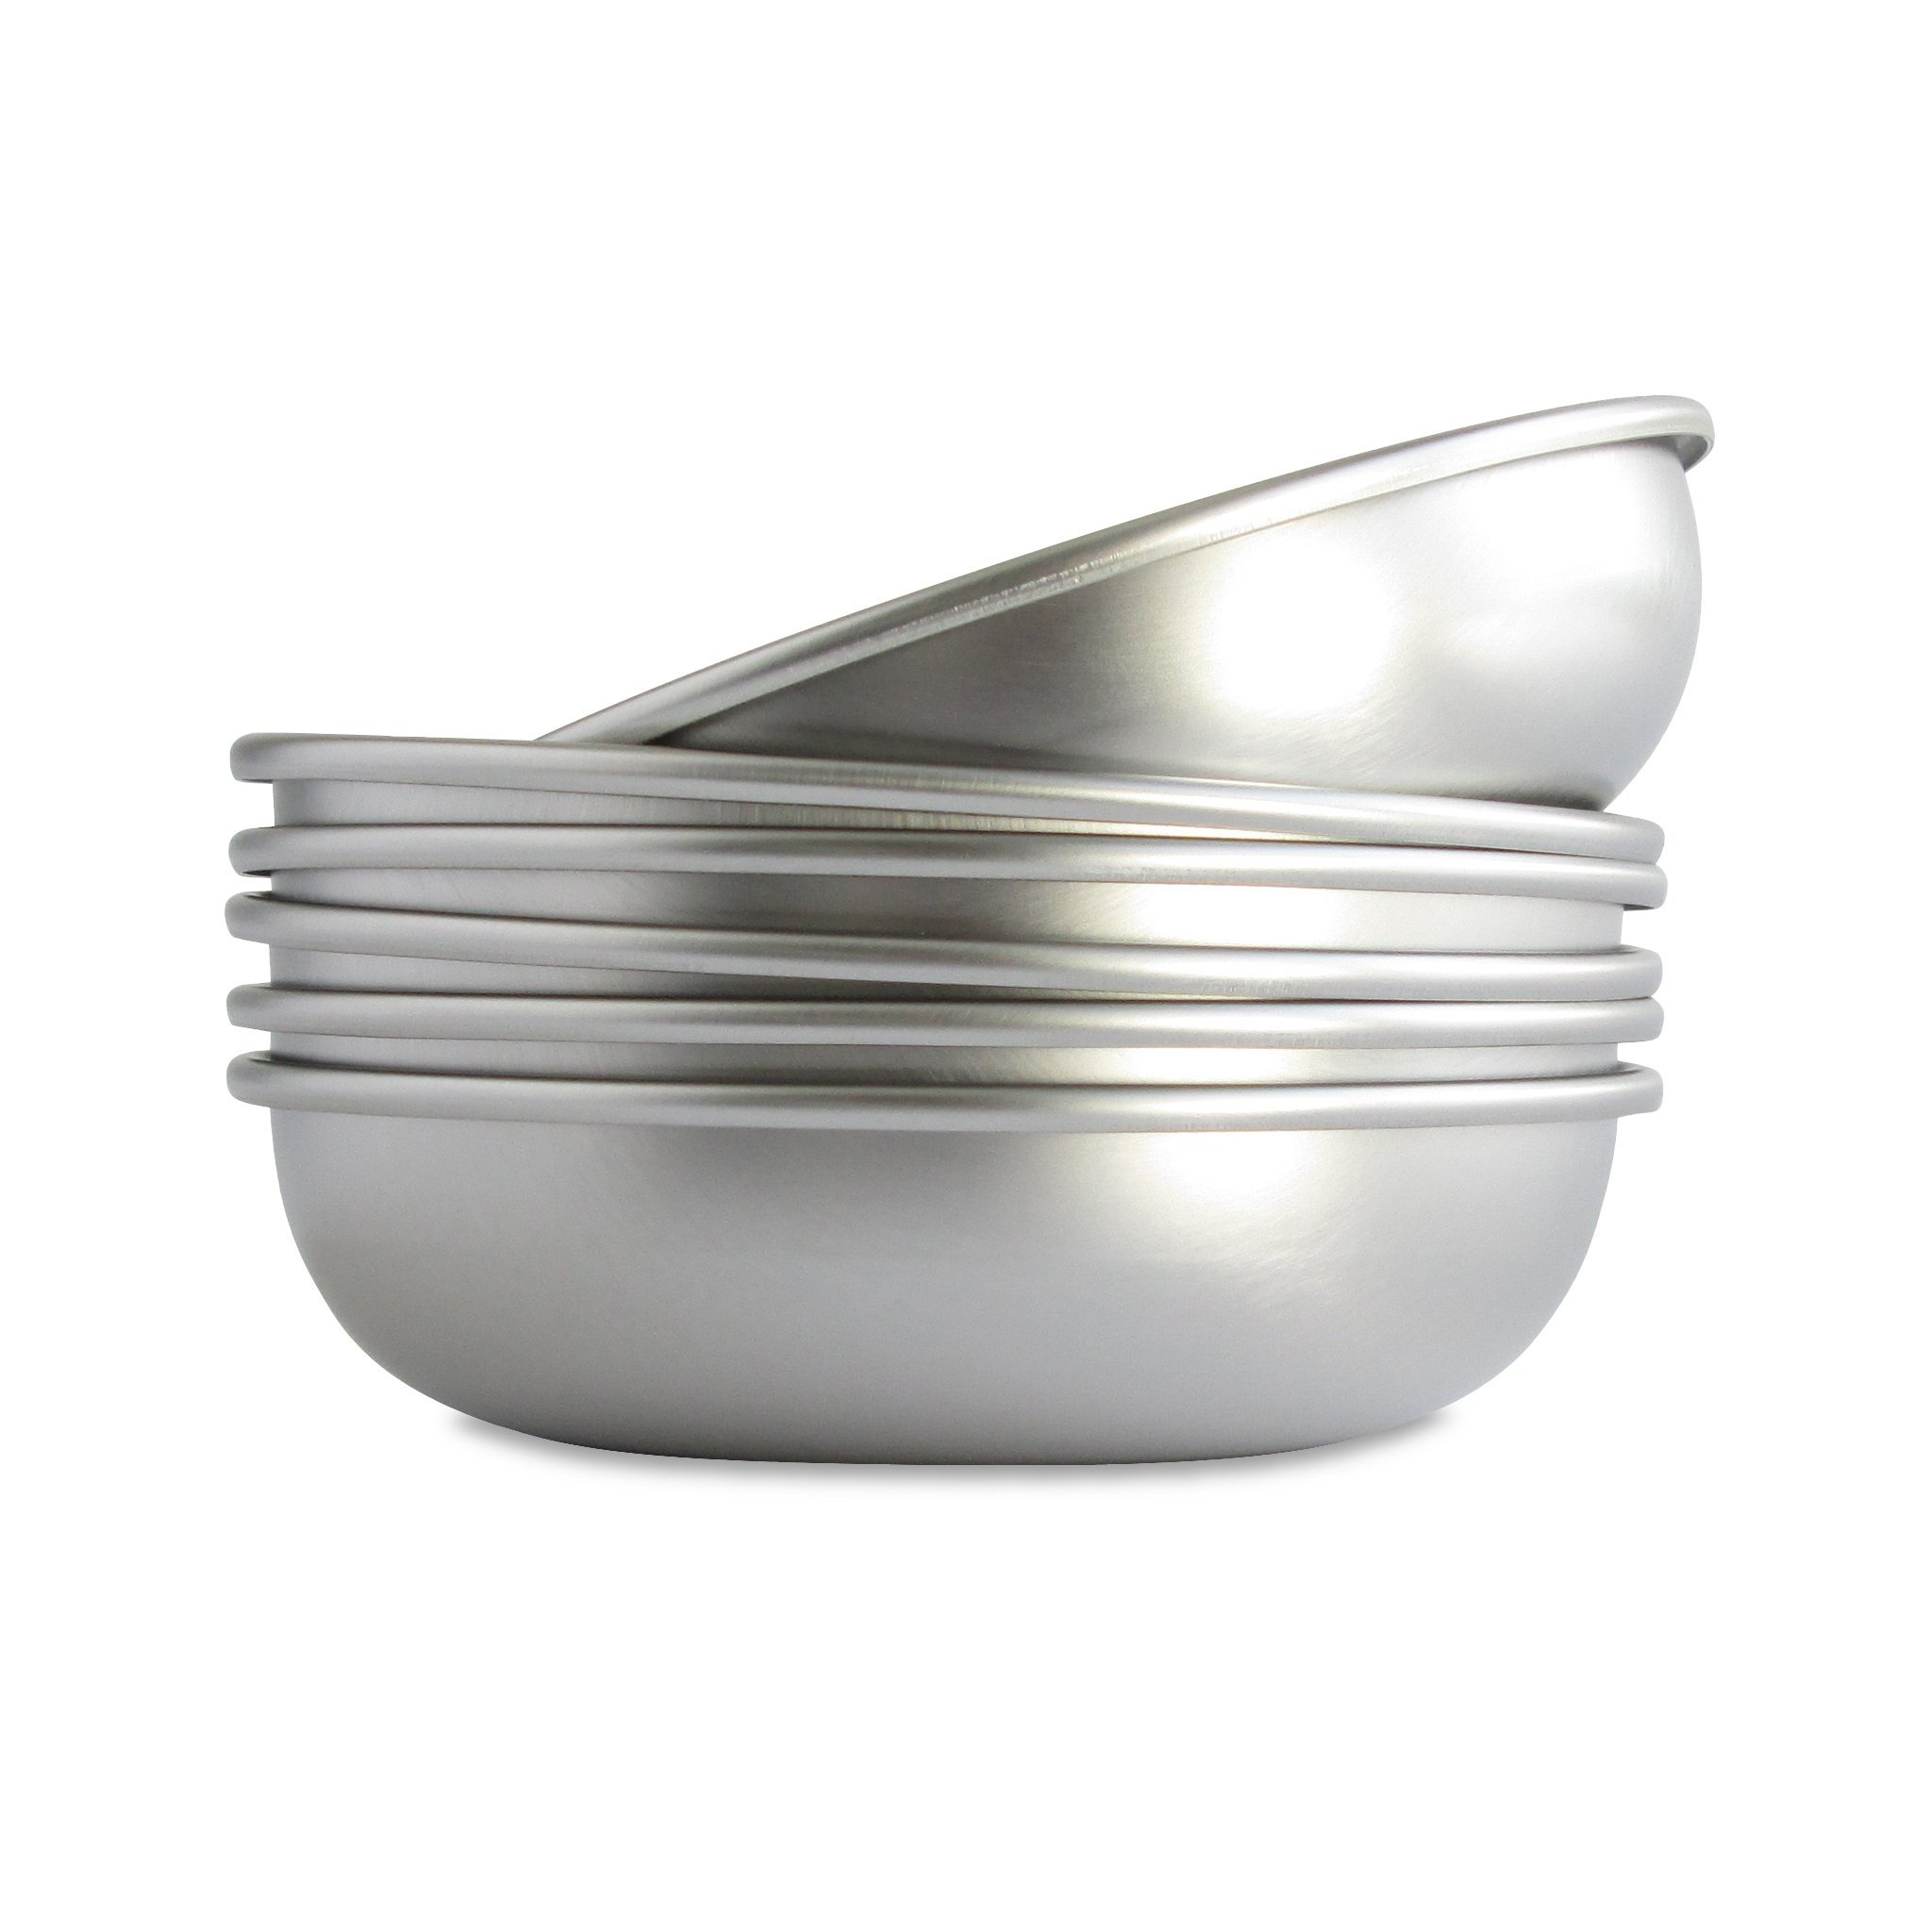 Basis Pet Made in The USA Low Profile Stainless Steel Cat Dish, 6 Pack by Basis Pet